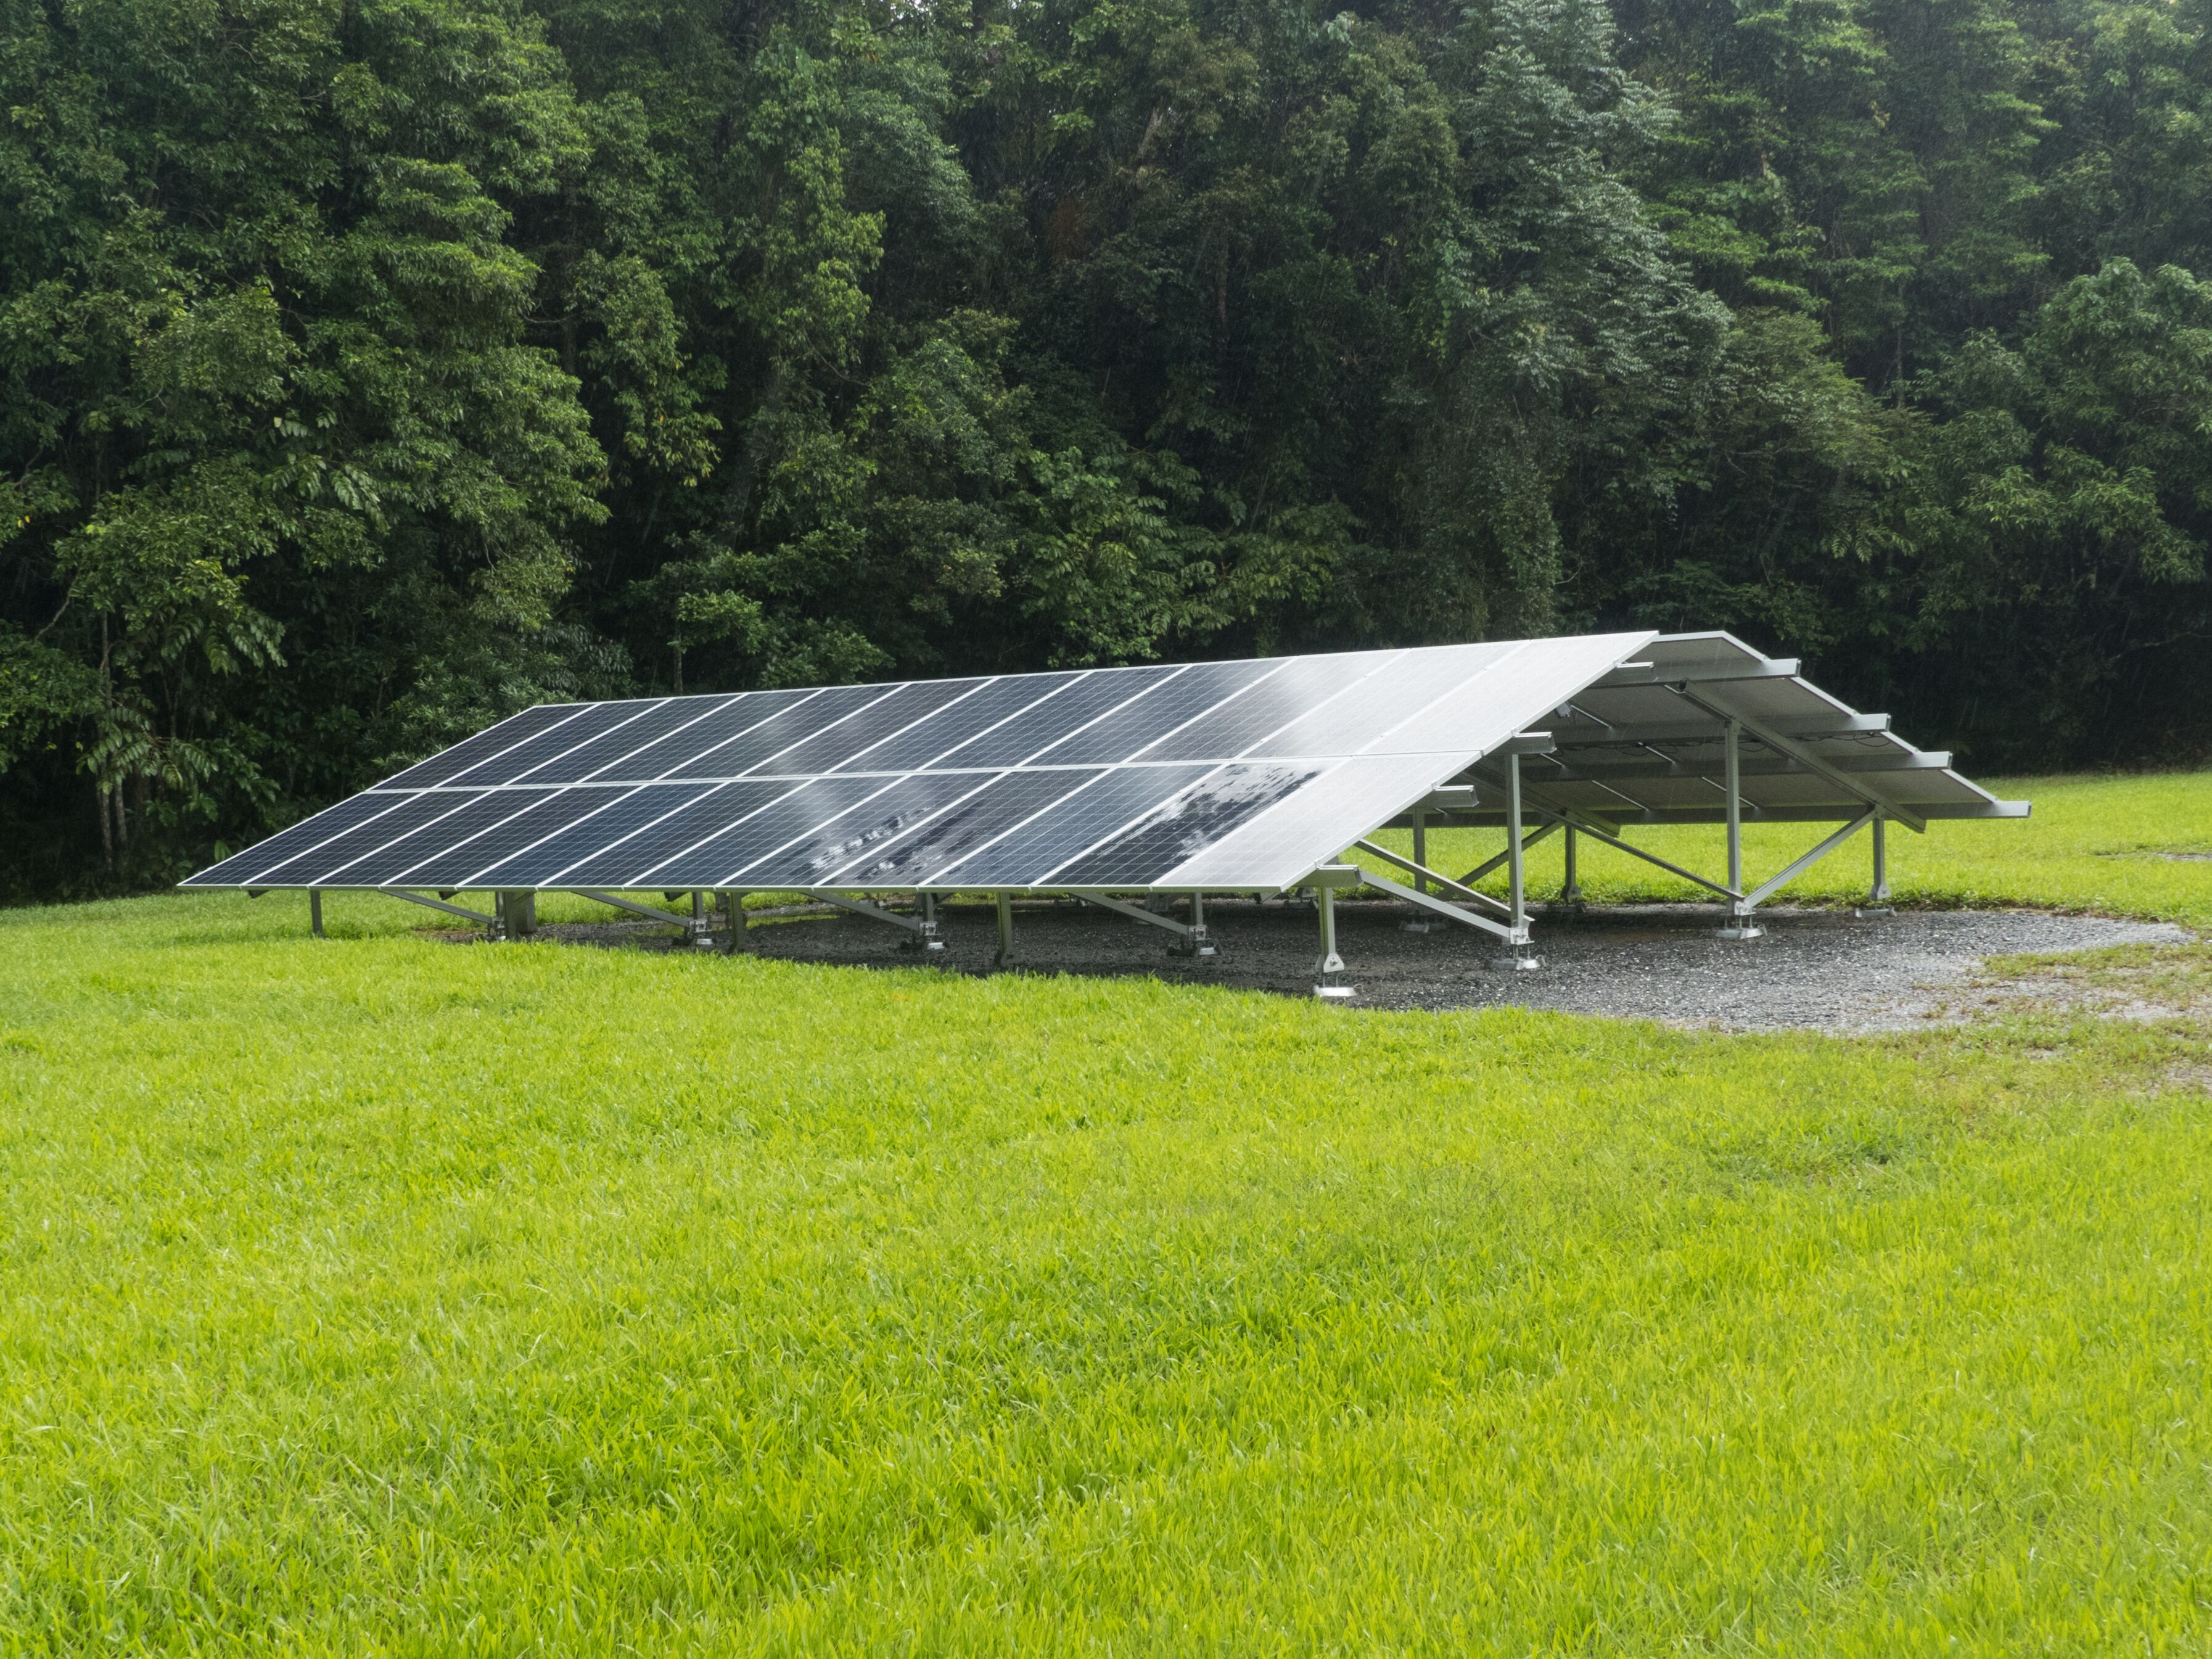 Daintree Lowland Rainforst sees more solar panels installed in April 2019